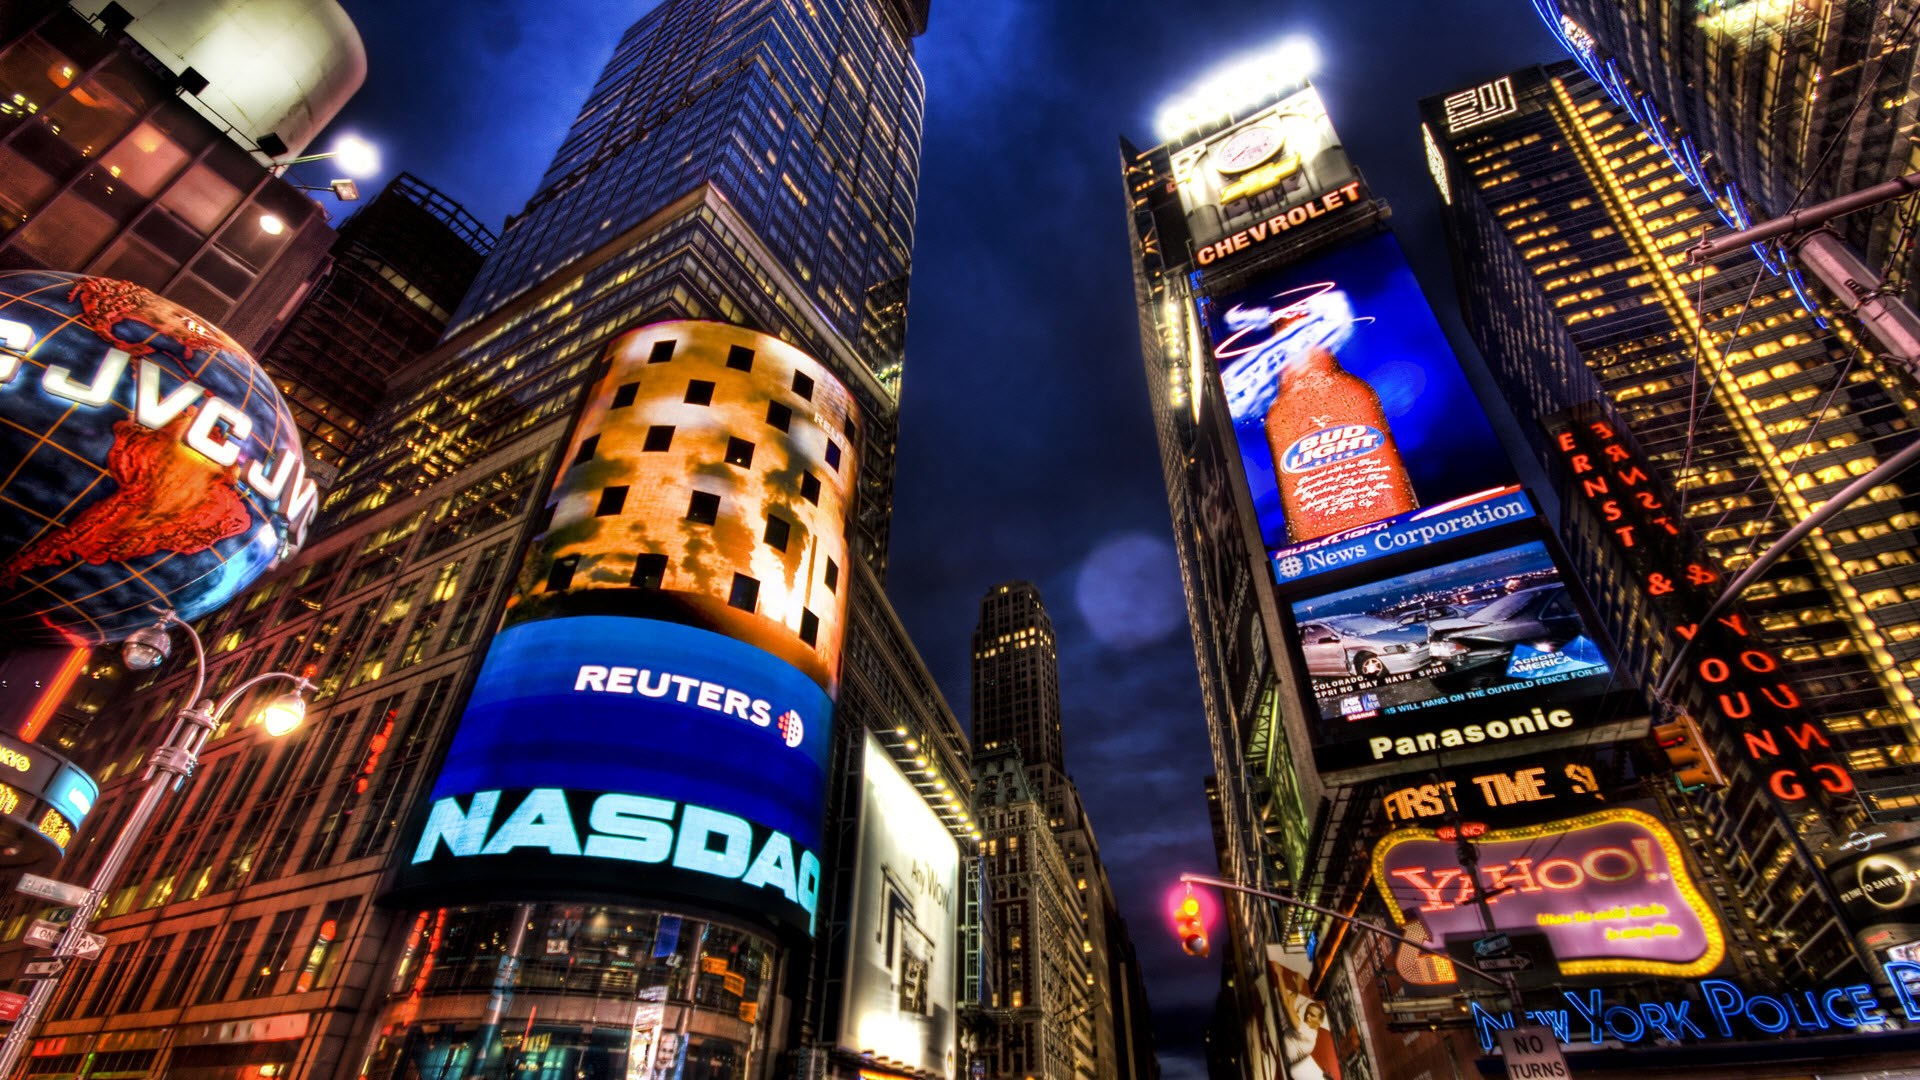 nasdaq stock market new york wallpaper [1920x1080]